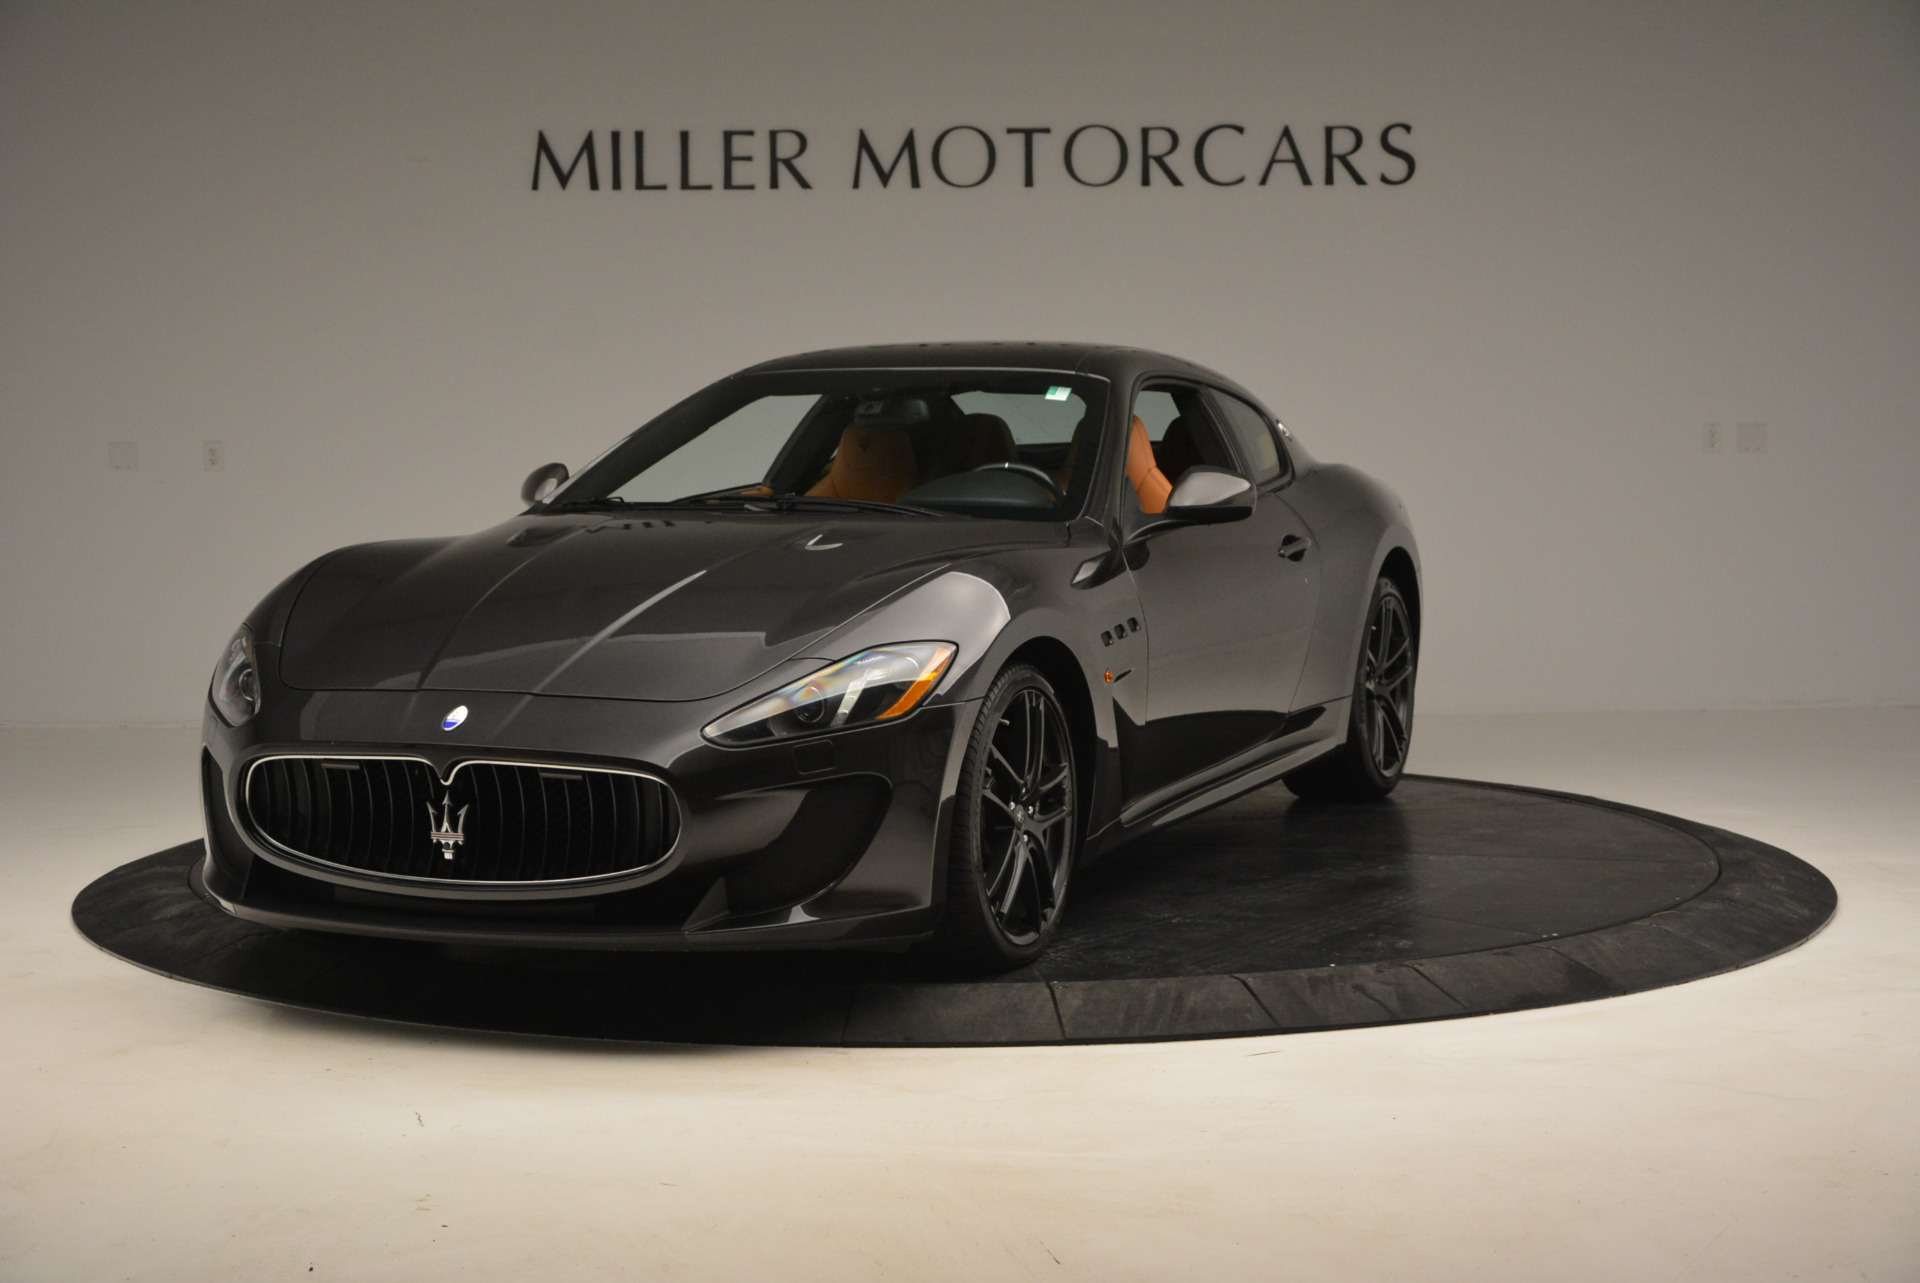 Used 2013 Maserati GranTurismo MC for sale Sold at Rolls-Royce Motor Cars Greenwich in Greenwich CT 06830 1